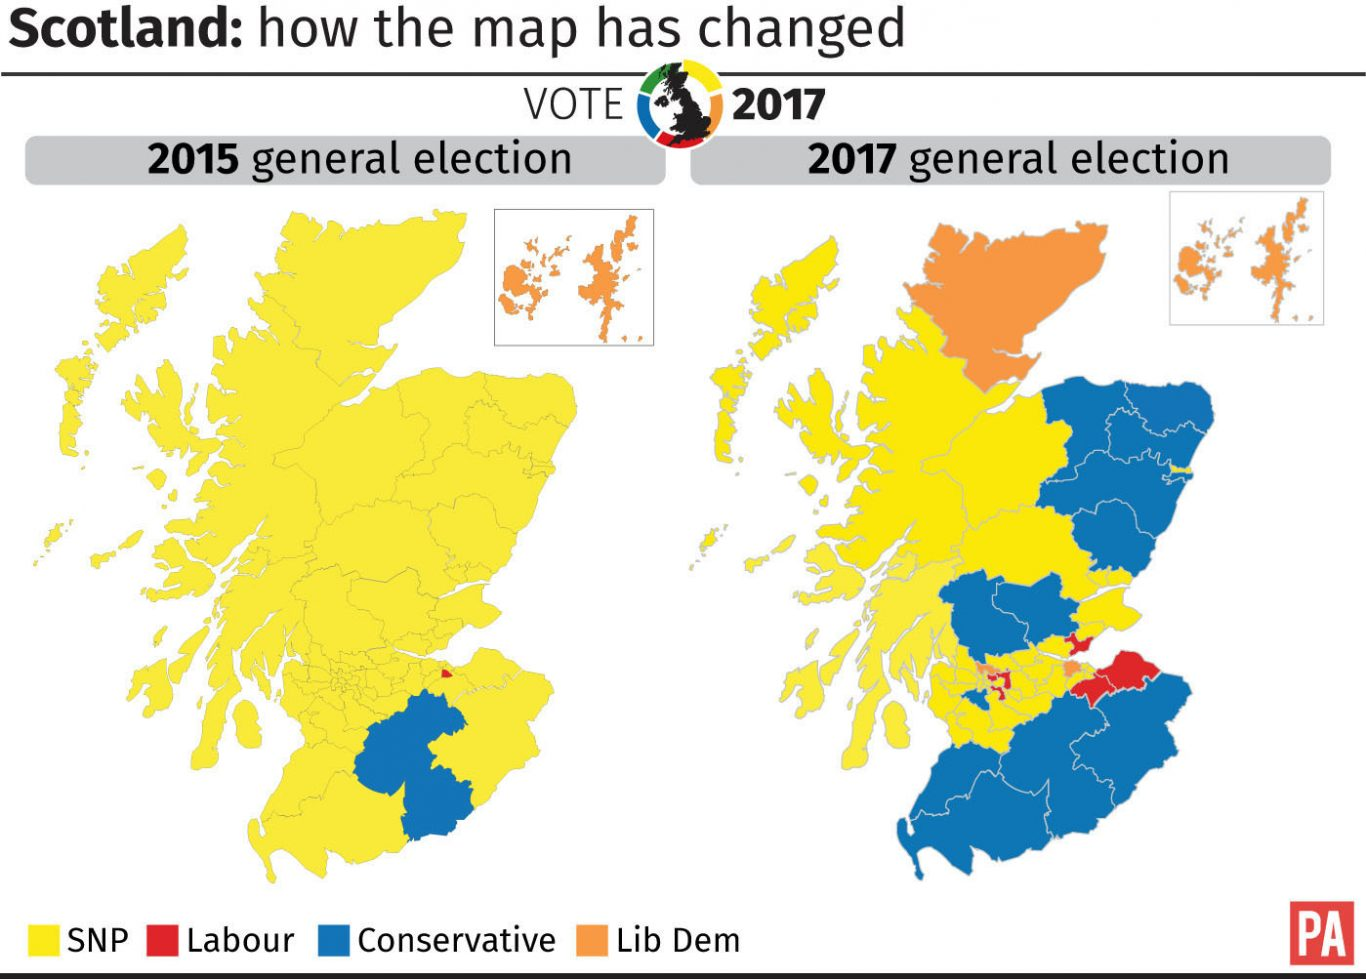 How the political map has changed in Scotland since the 2015 election.